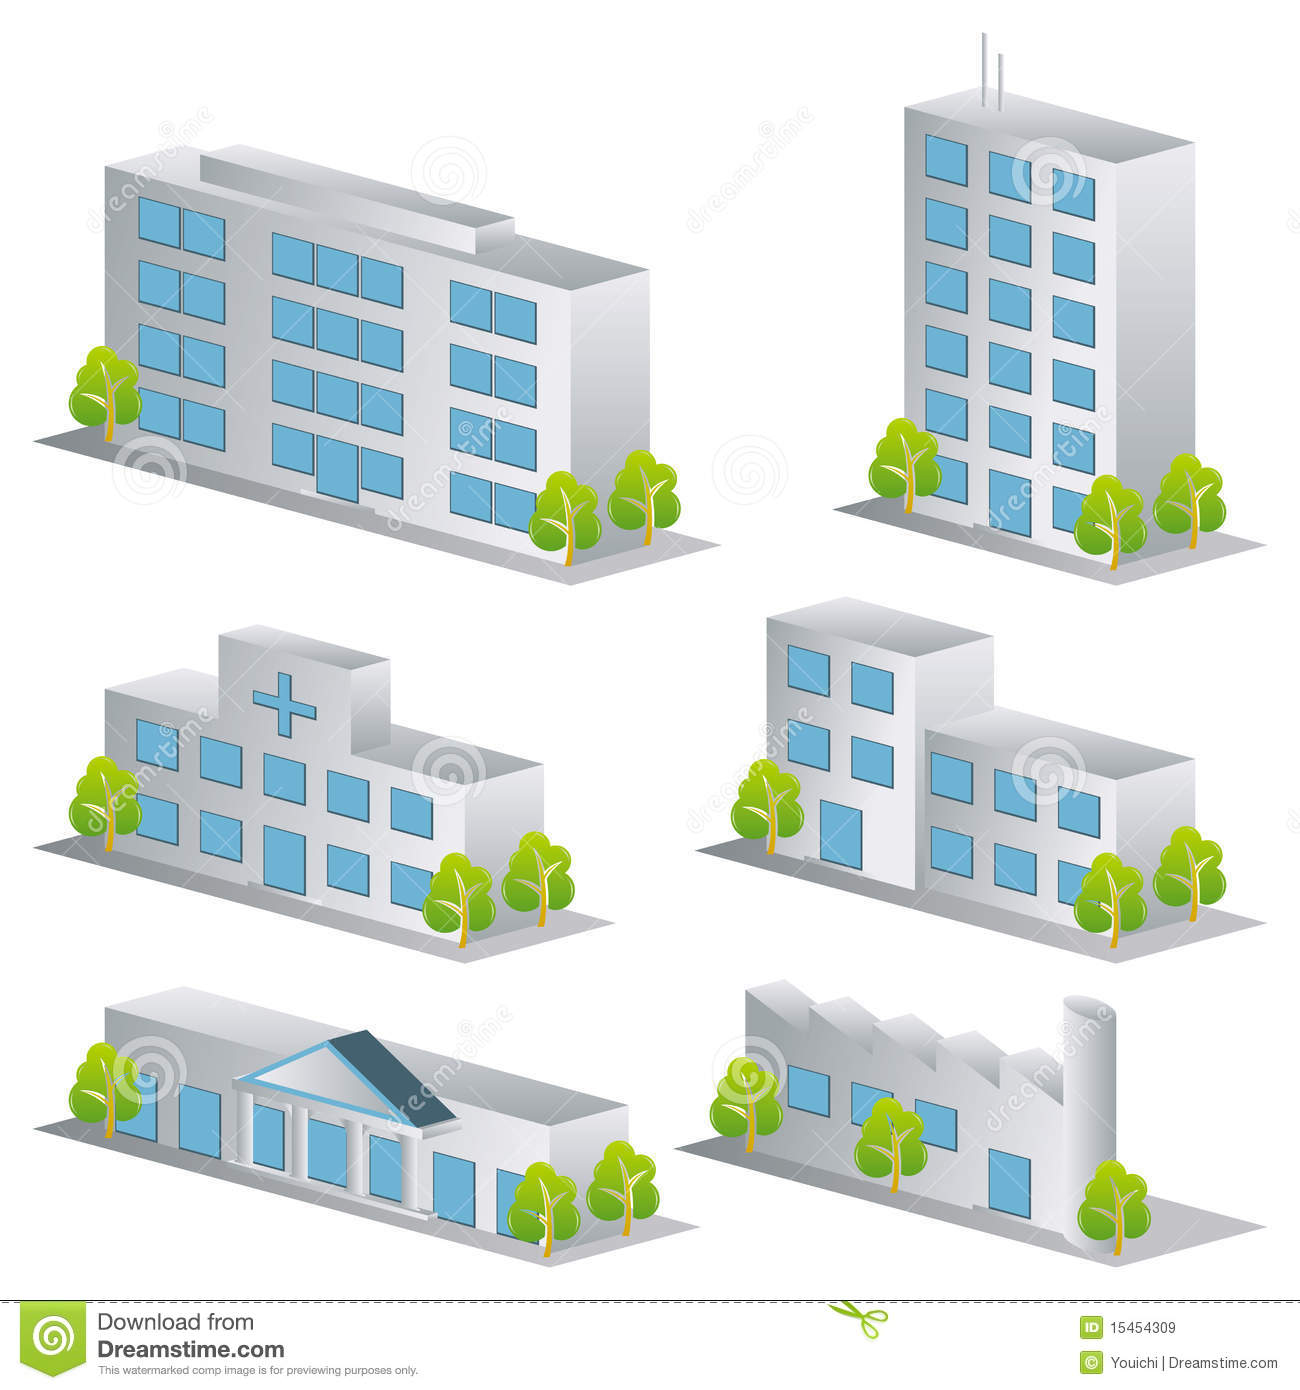 3d building icons set royalty free stock images image for Build house online 3d free